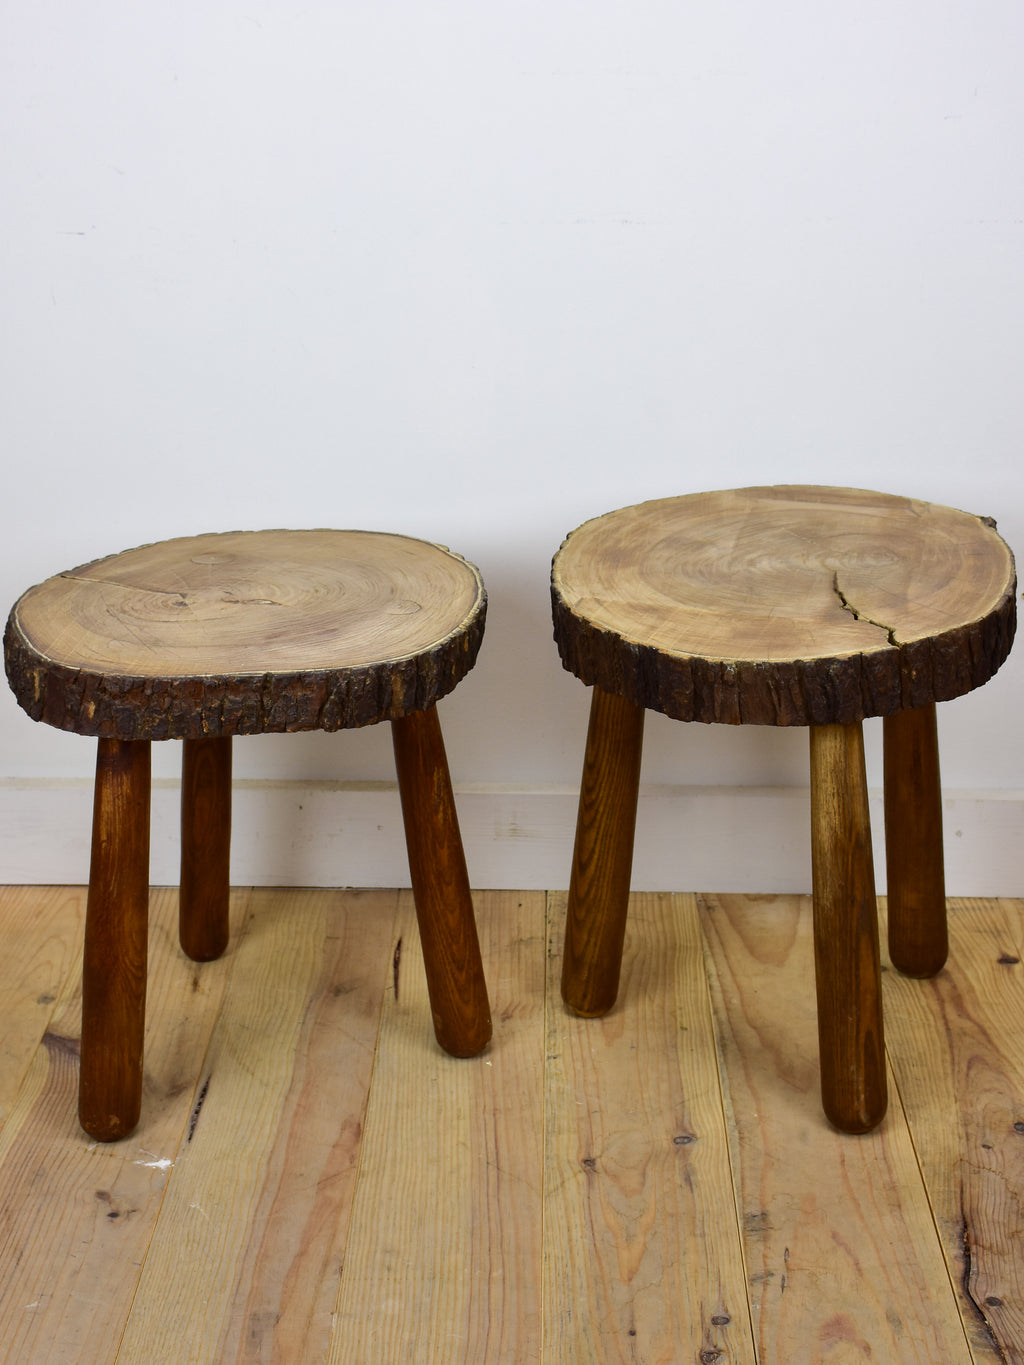 Two vintage French elmwood stools / side tables